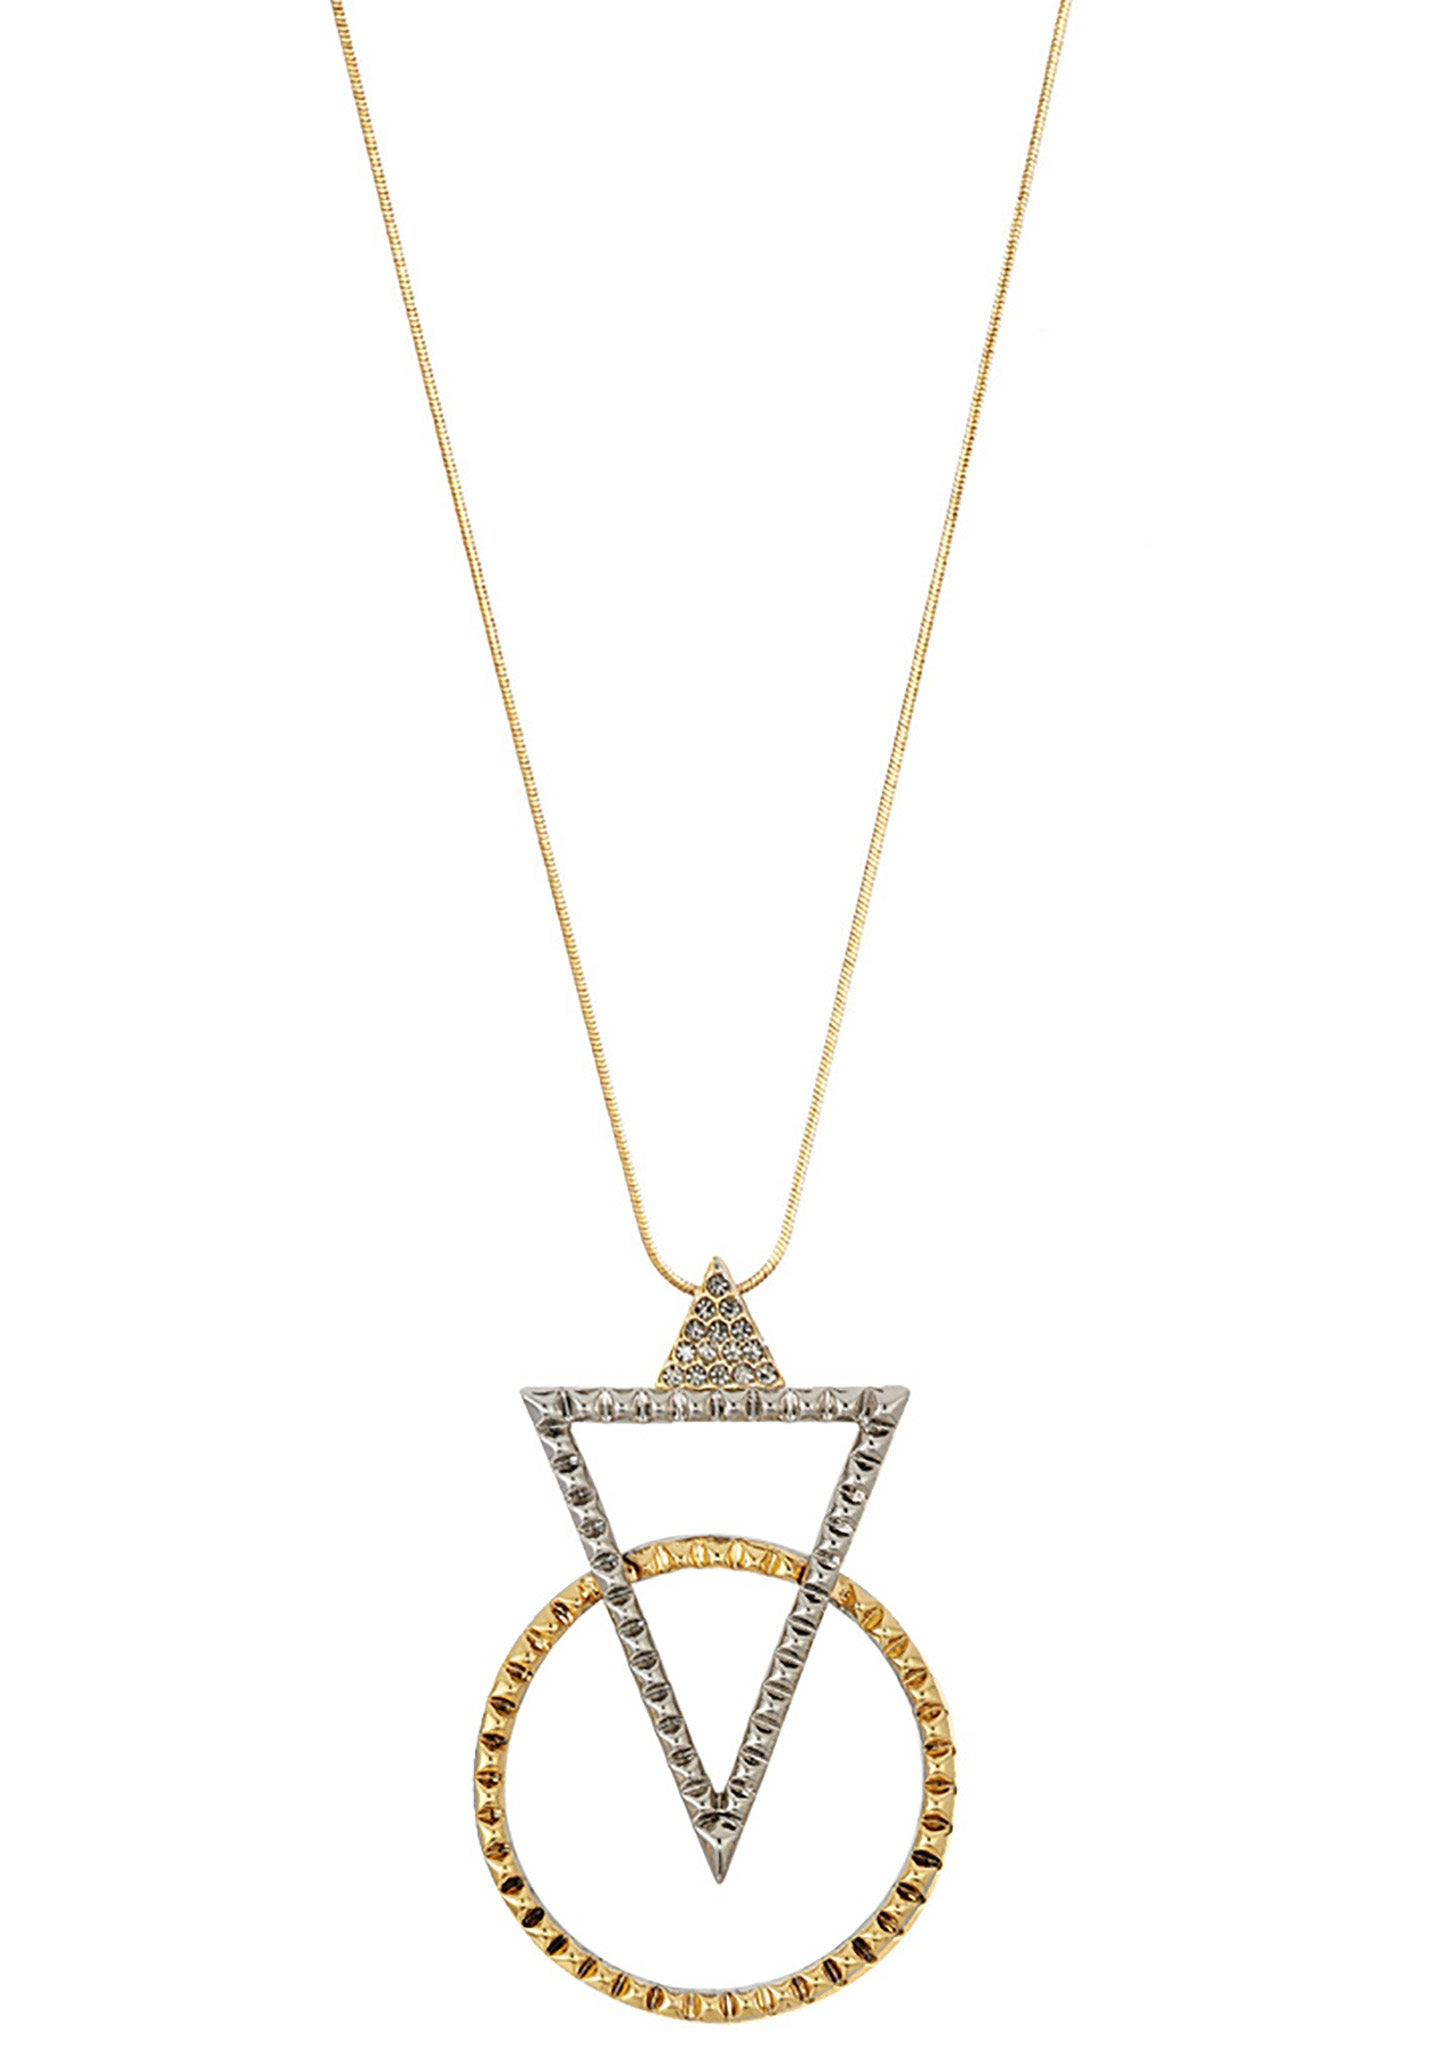 House of Harlow 1960 Nadia Pendant Necklace